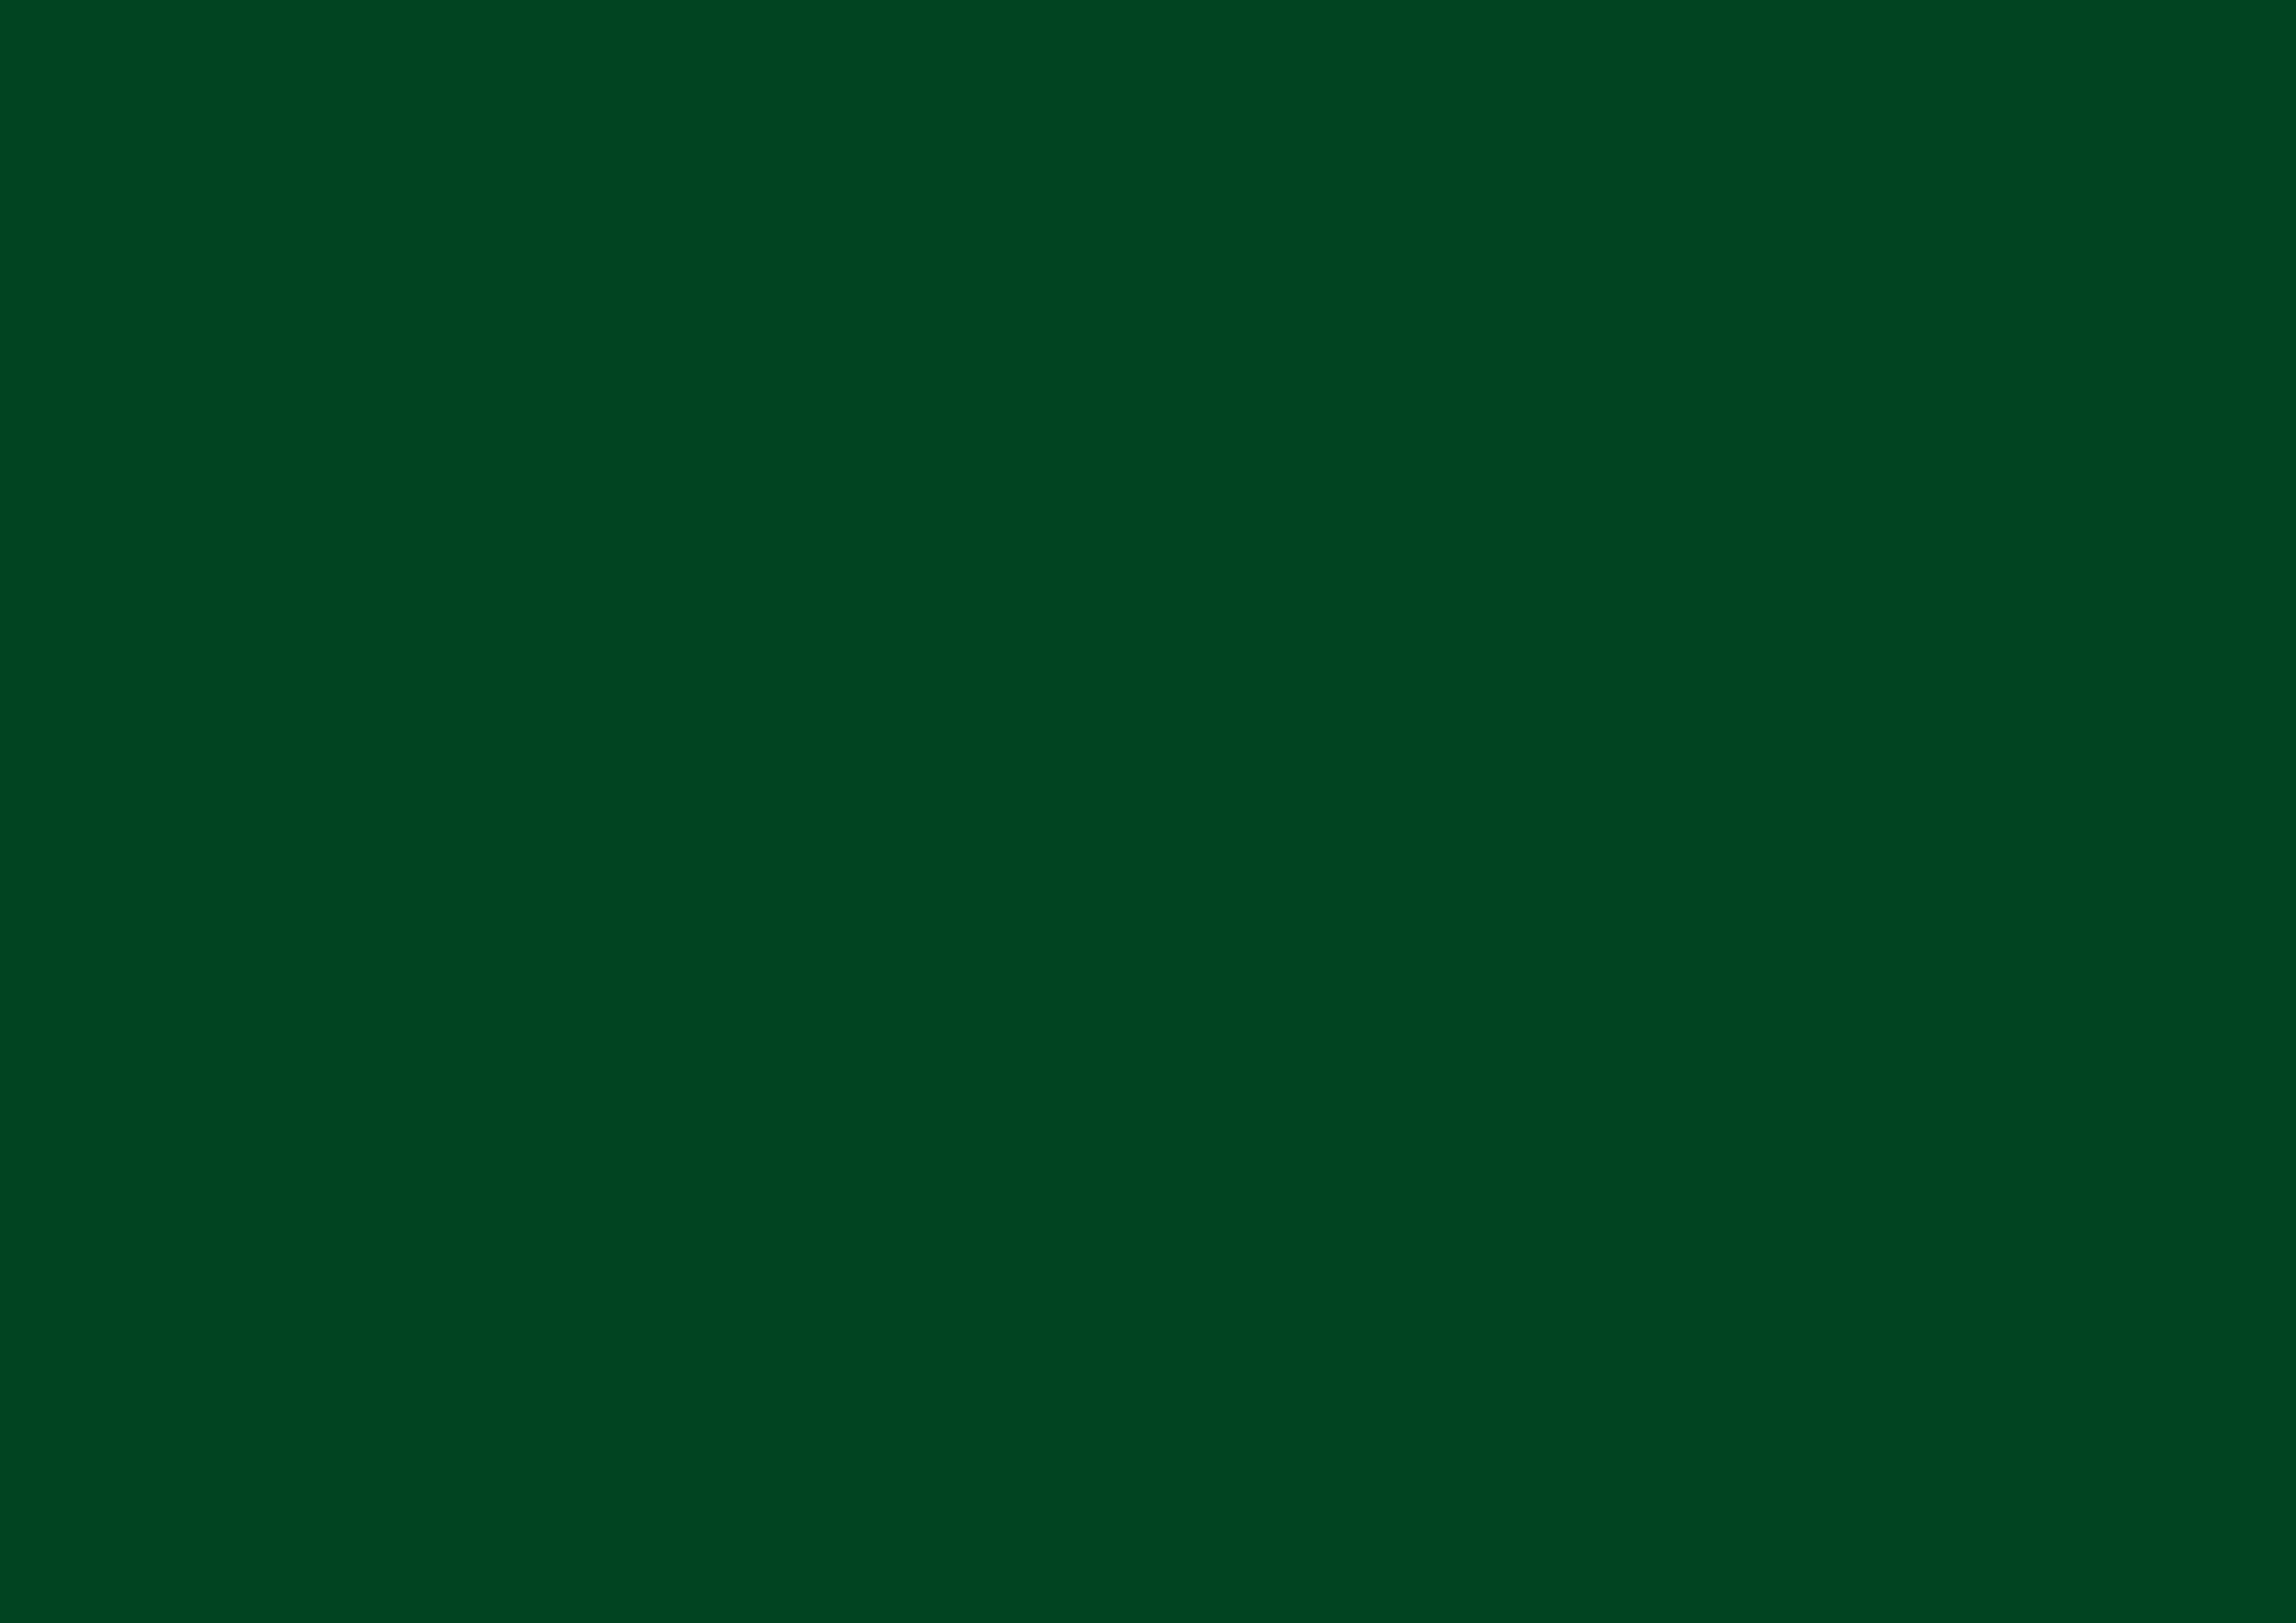 3508x2480 Forest Green Traditional Solid Color Background